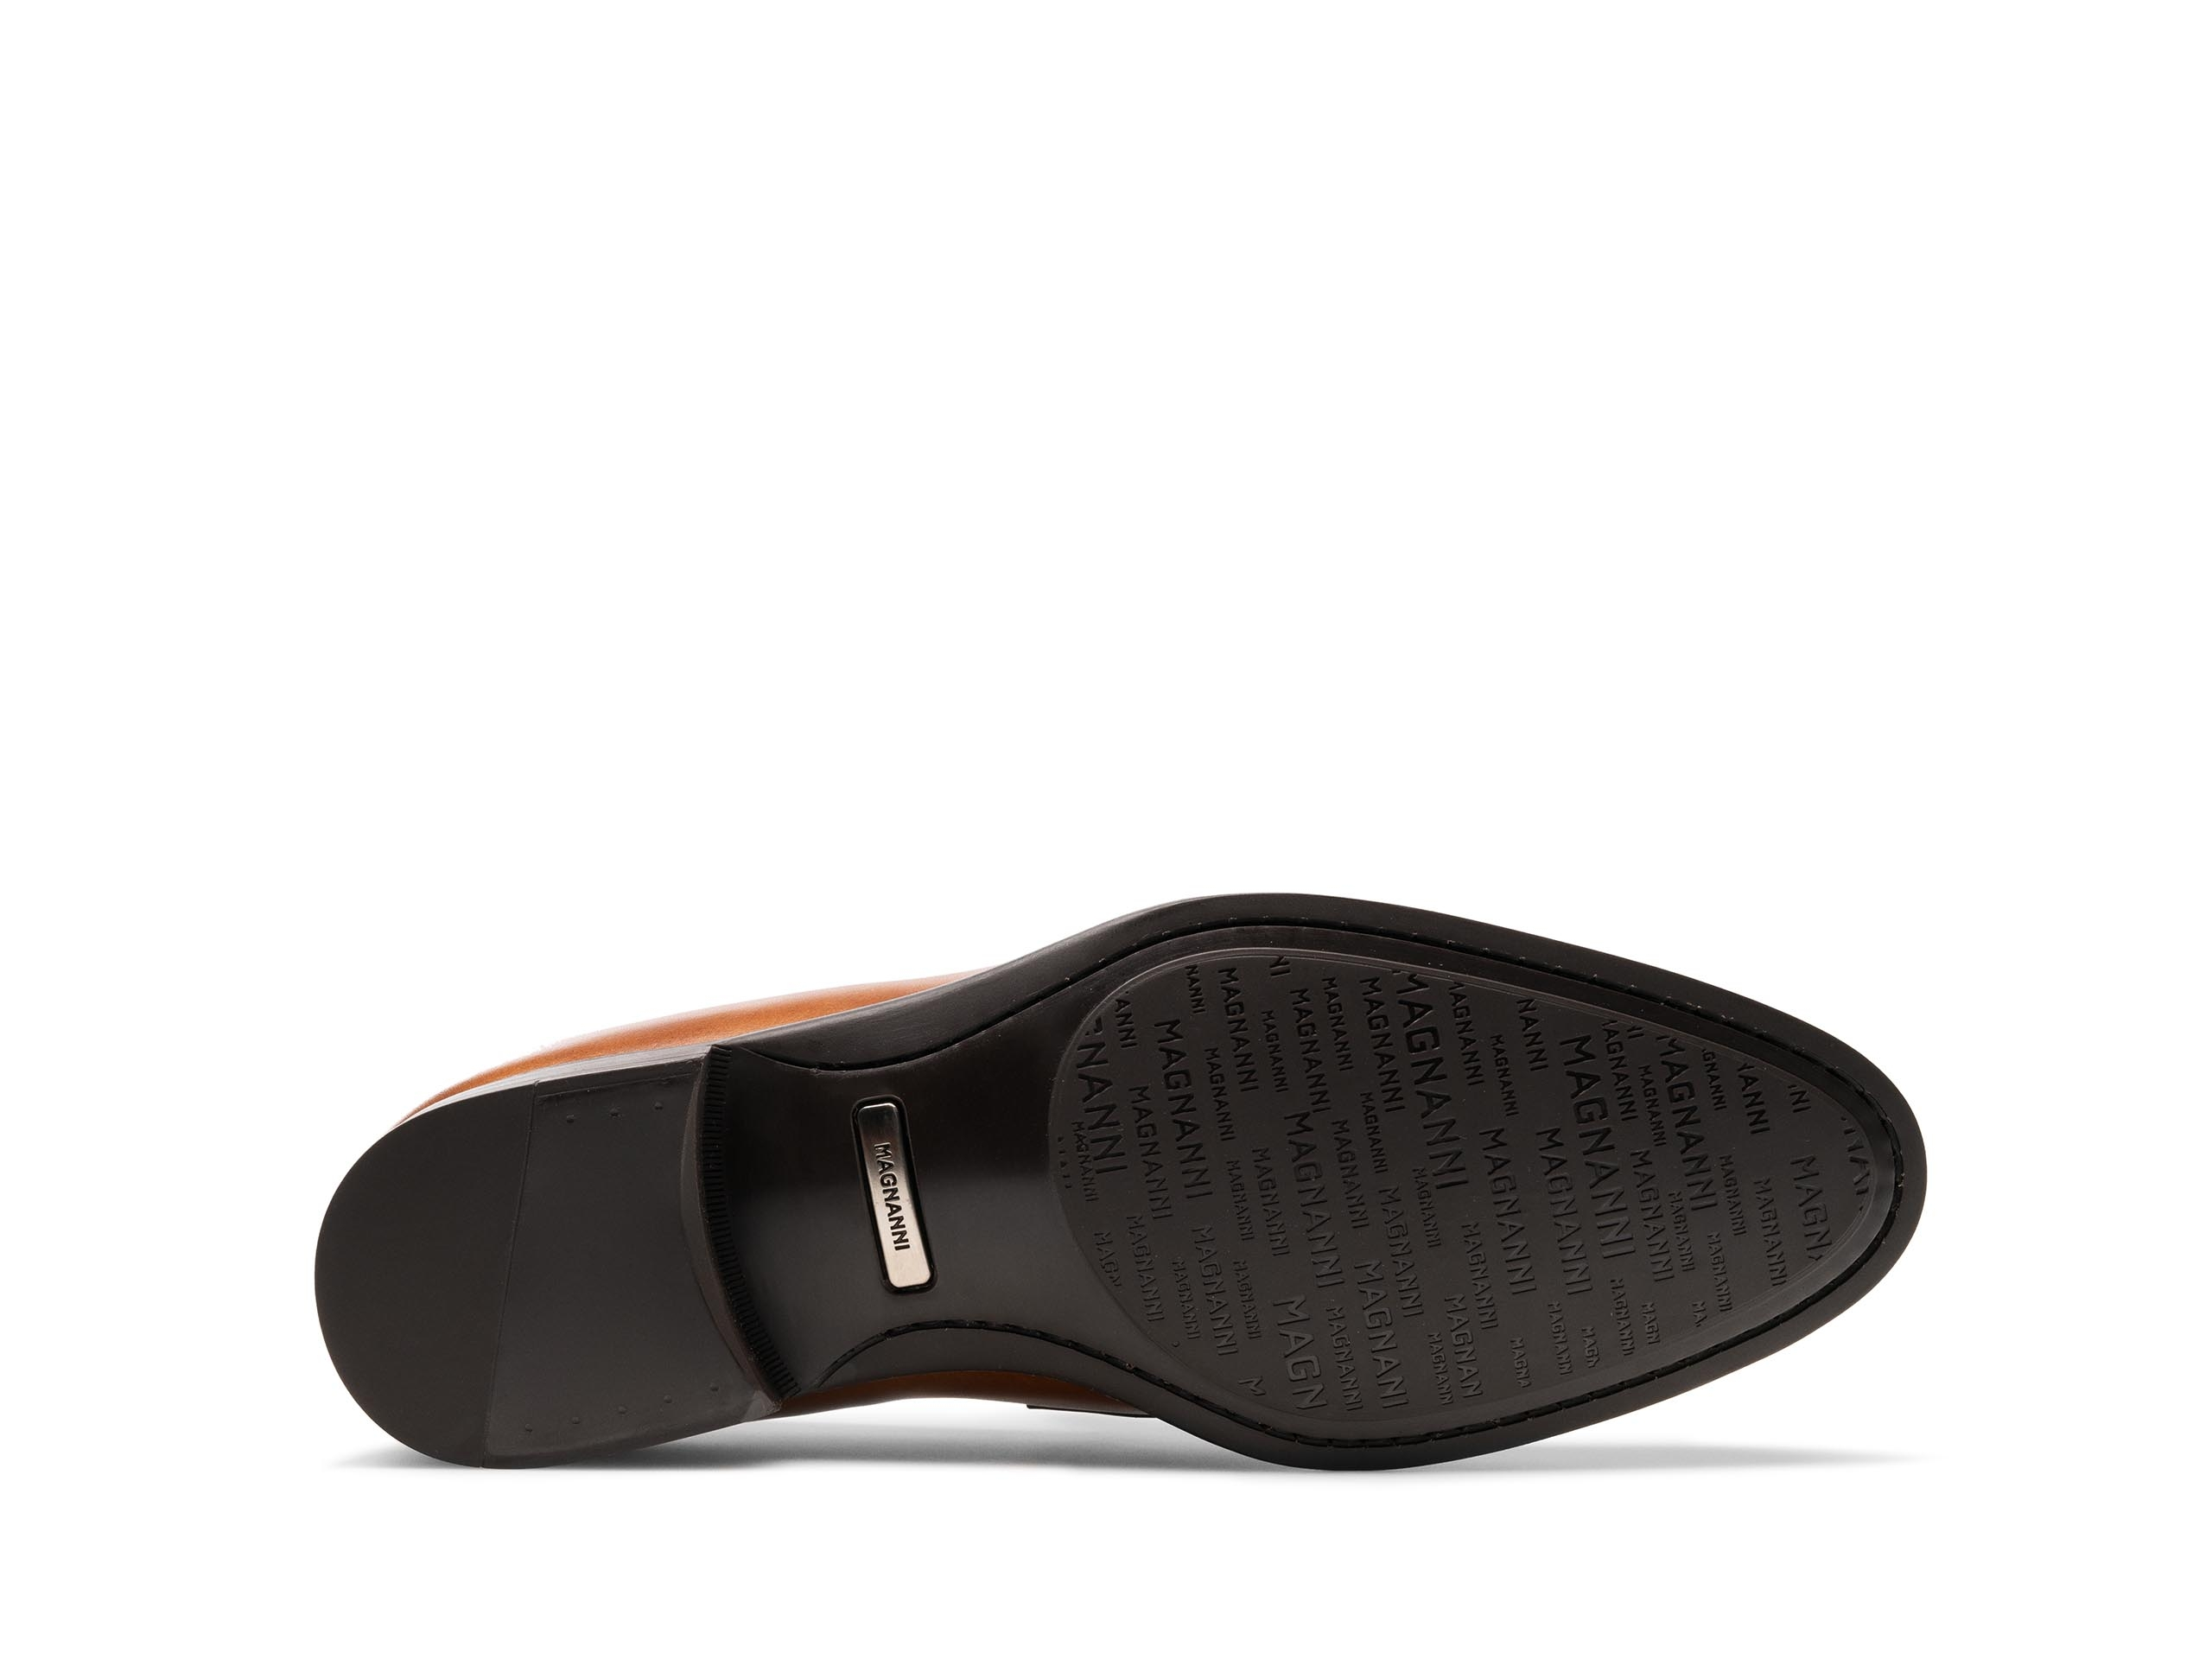 Sole of the Garner Tabaco